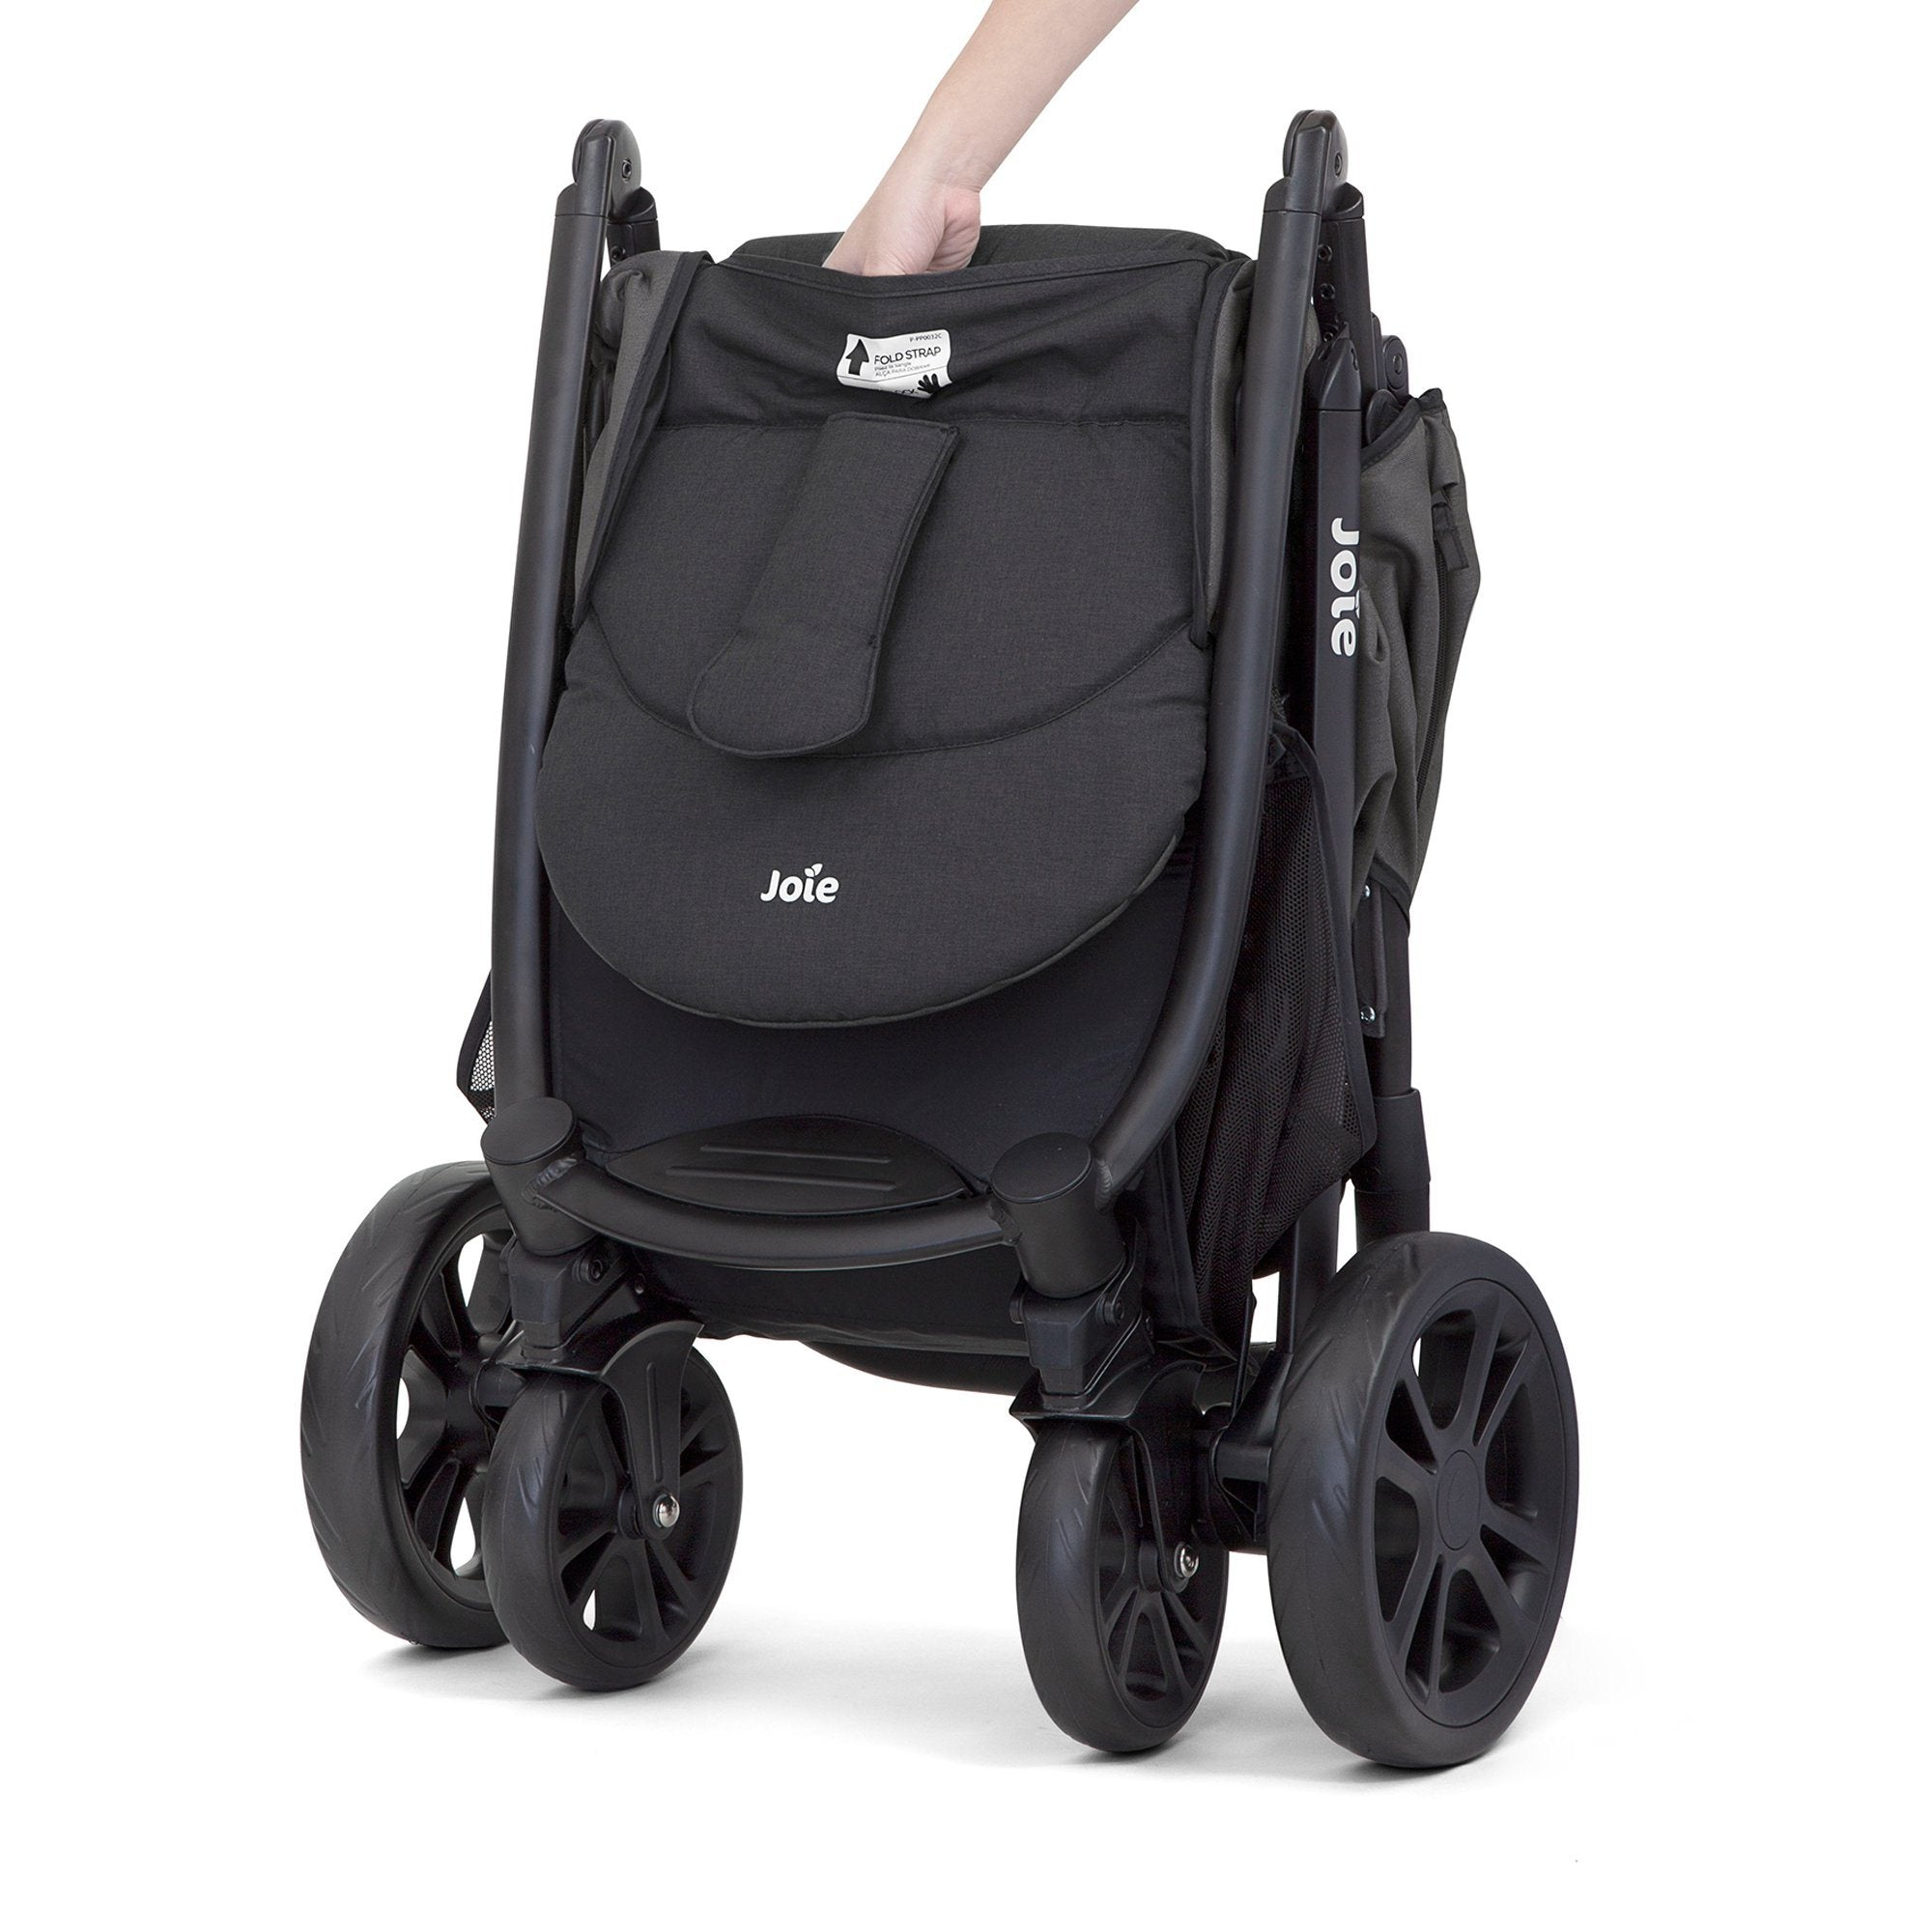 Joie Litetrax 4 stroller - Coal (black) - Pushchair Expert